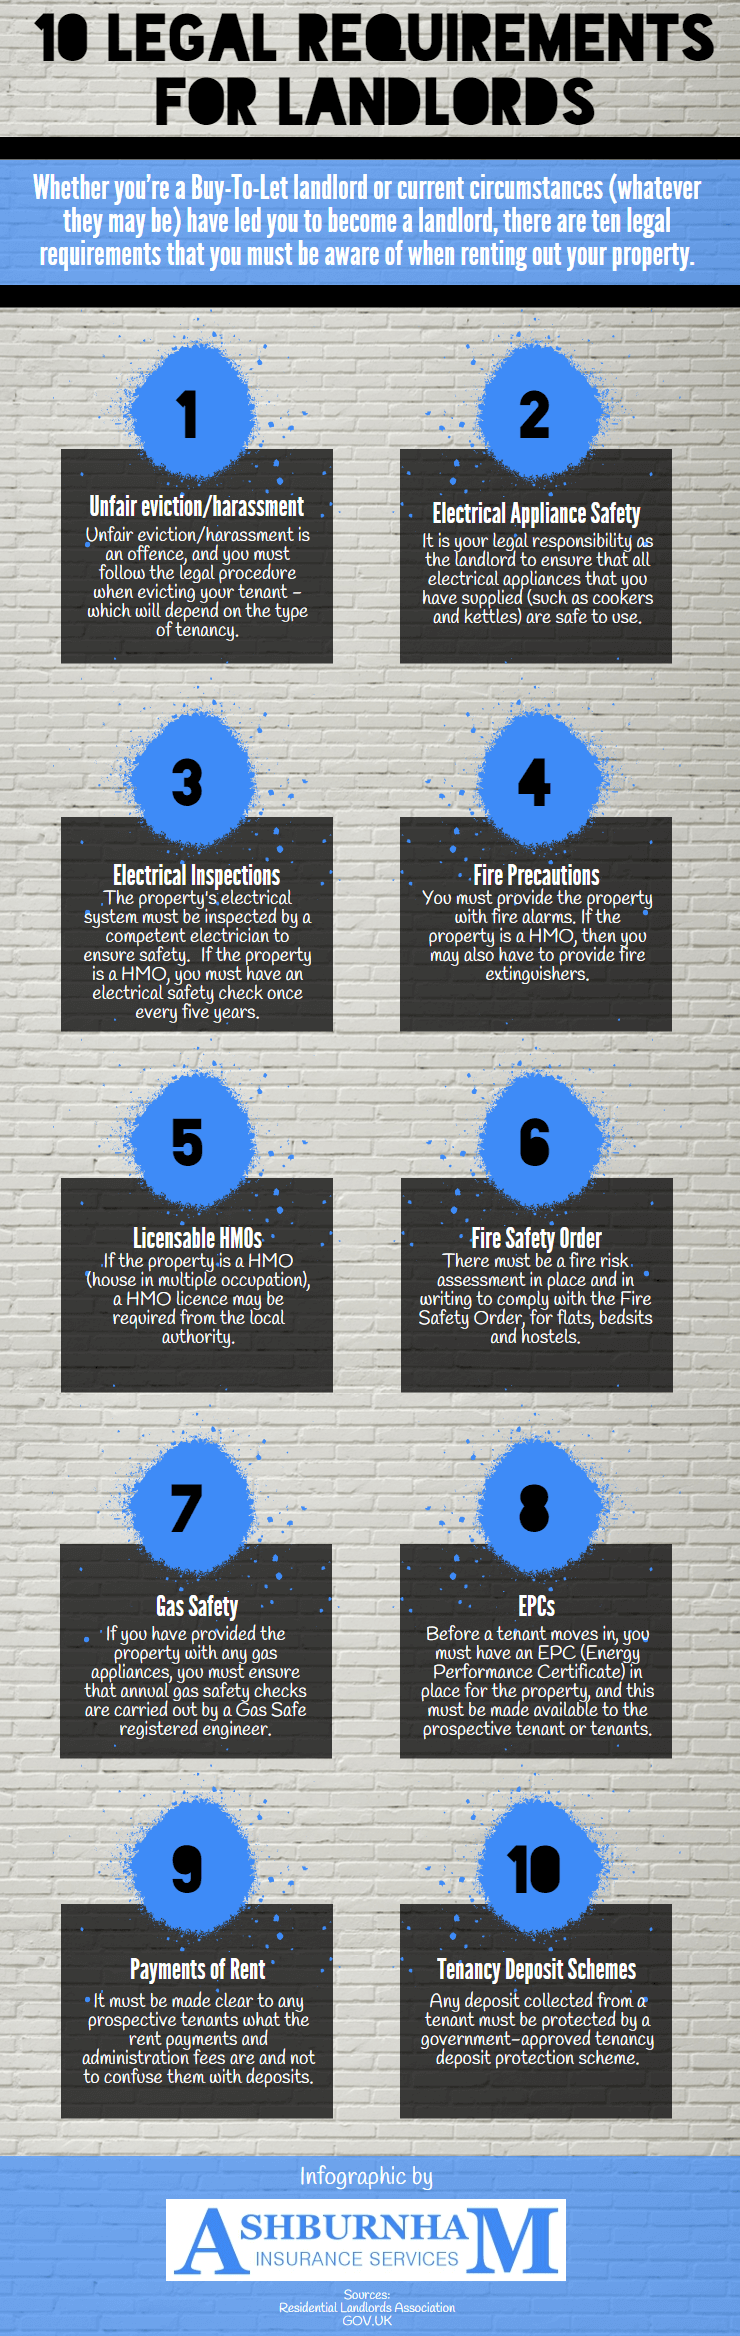 10 Legal Requirements for Landlords Infographic